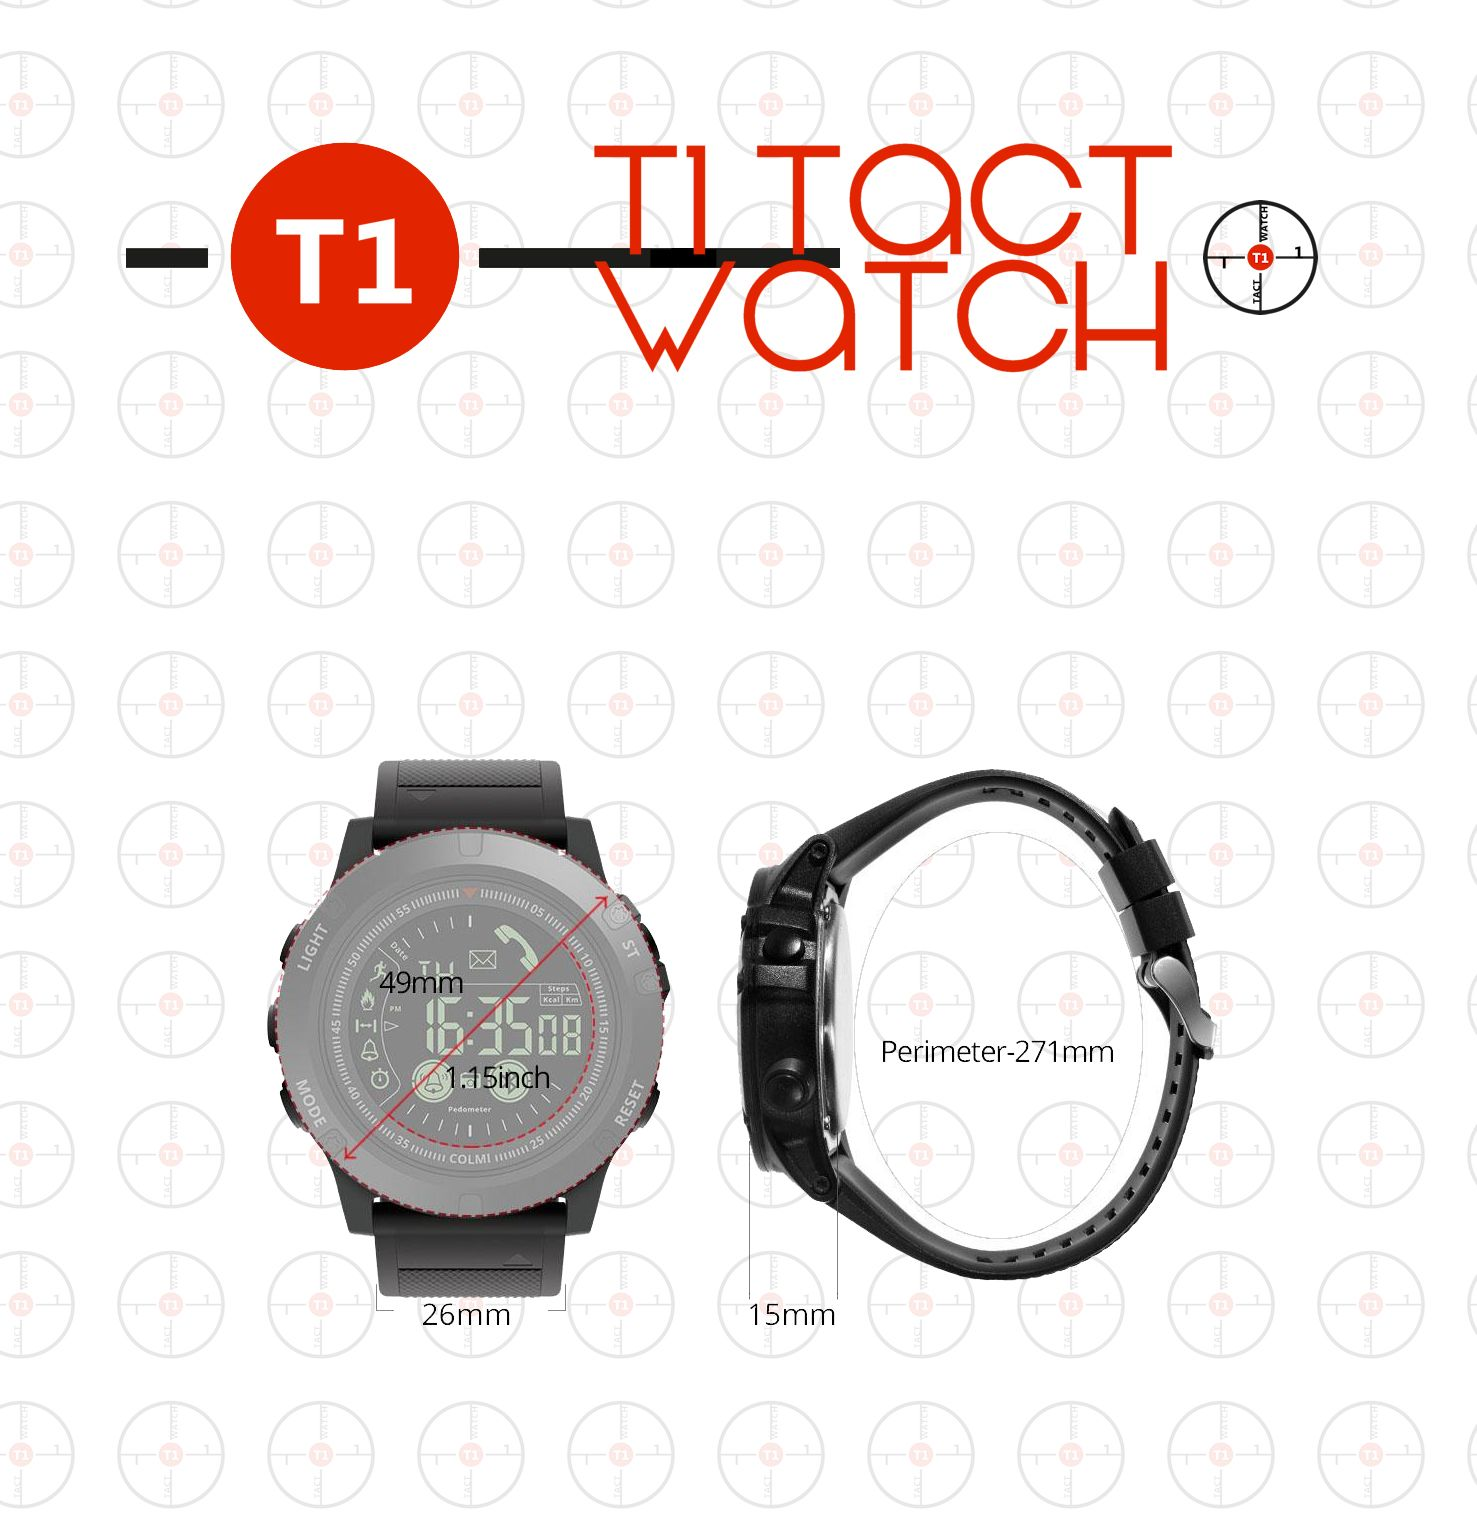 T1 Tact Smartwatch Measurements Face And Wristband With Images Michael Kors Watch Gshock Watch Smart Watch